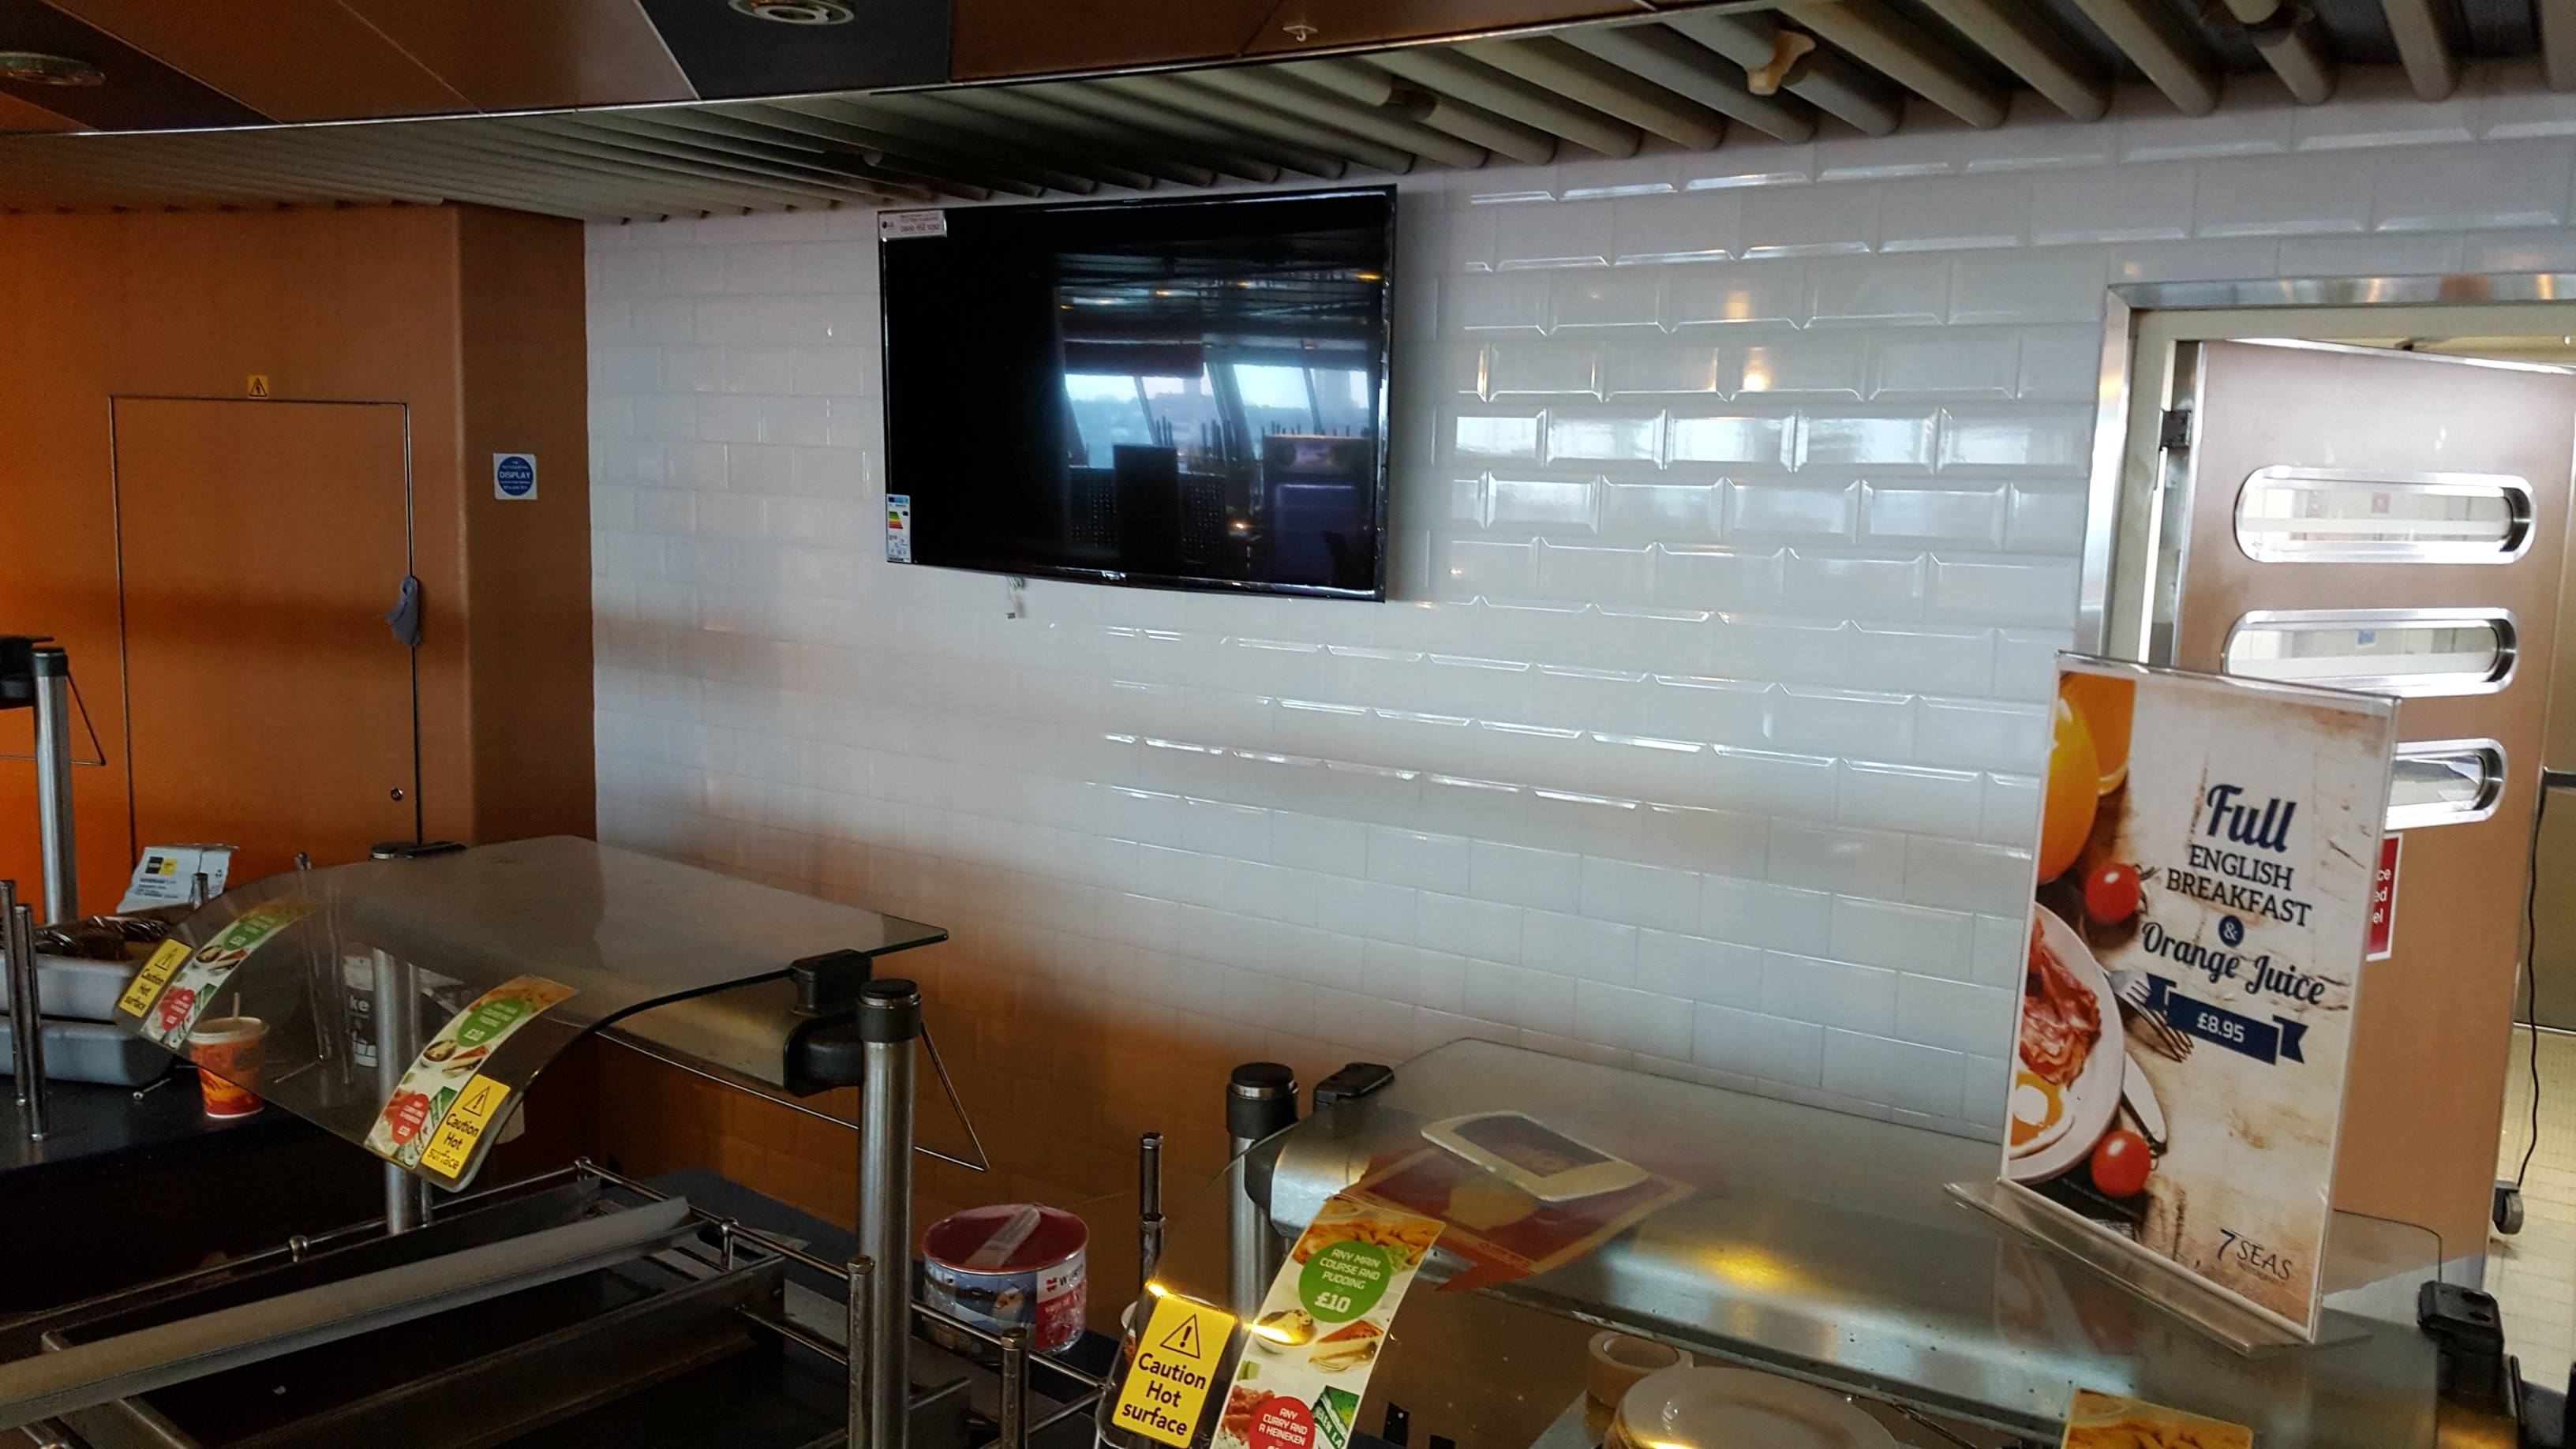 New tiling behind servery